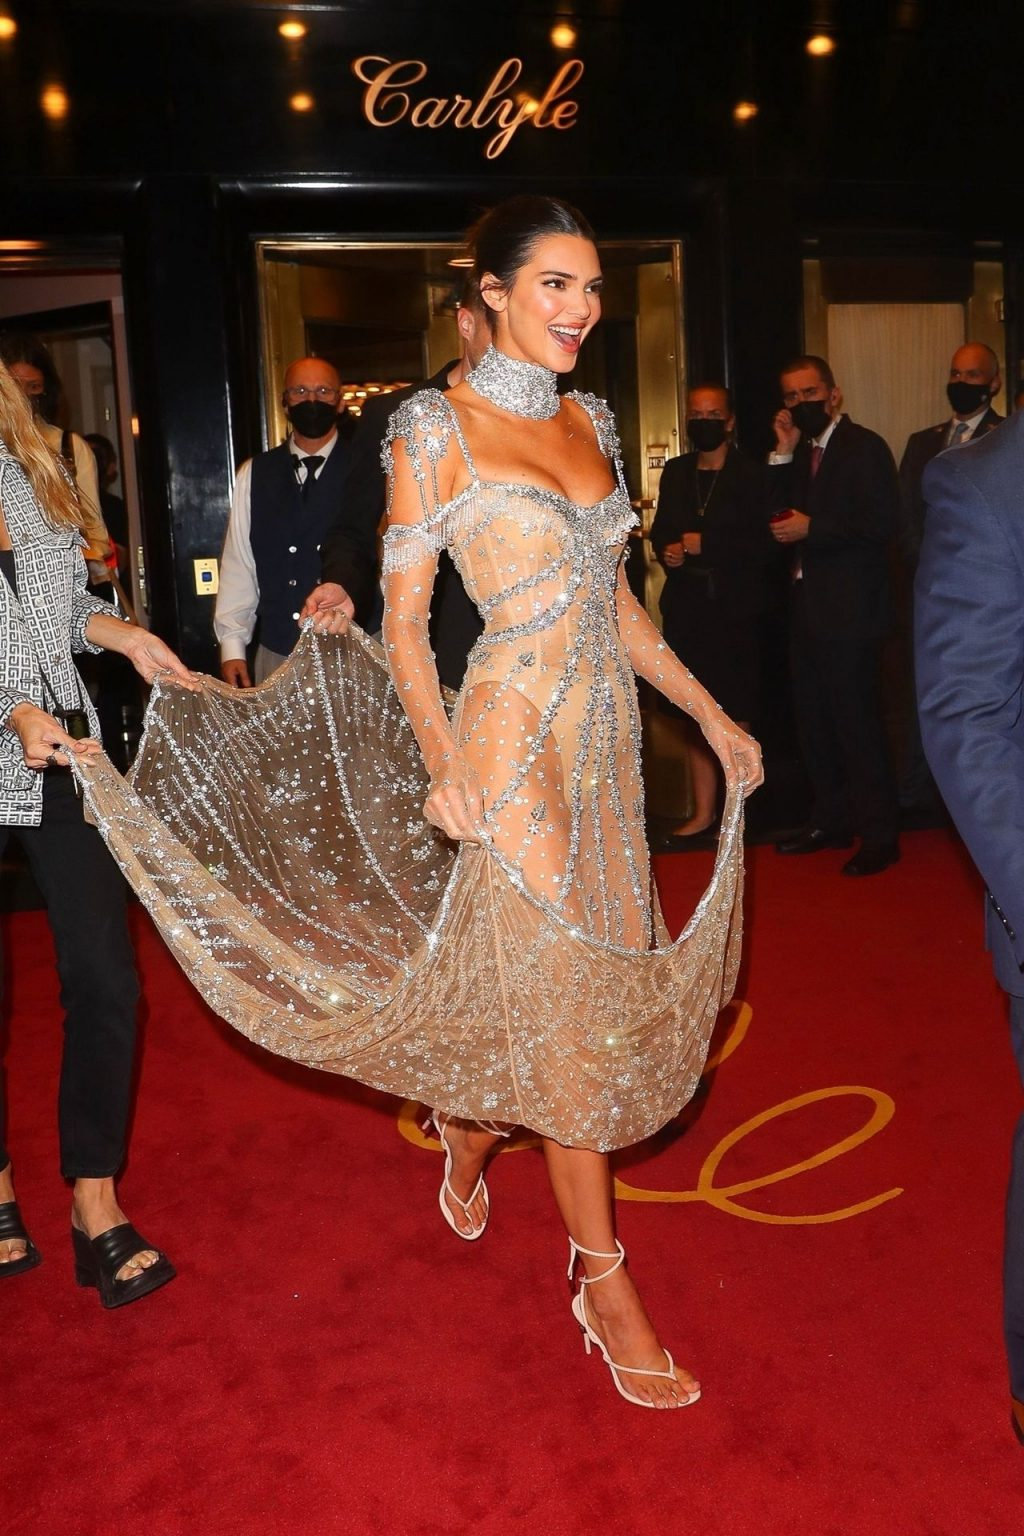 Kendall Jenner Poses in a 'Naked' Dress at the 2021 Met Gala (150 Photos)